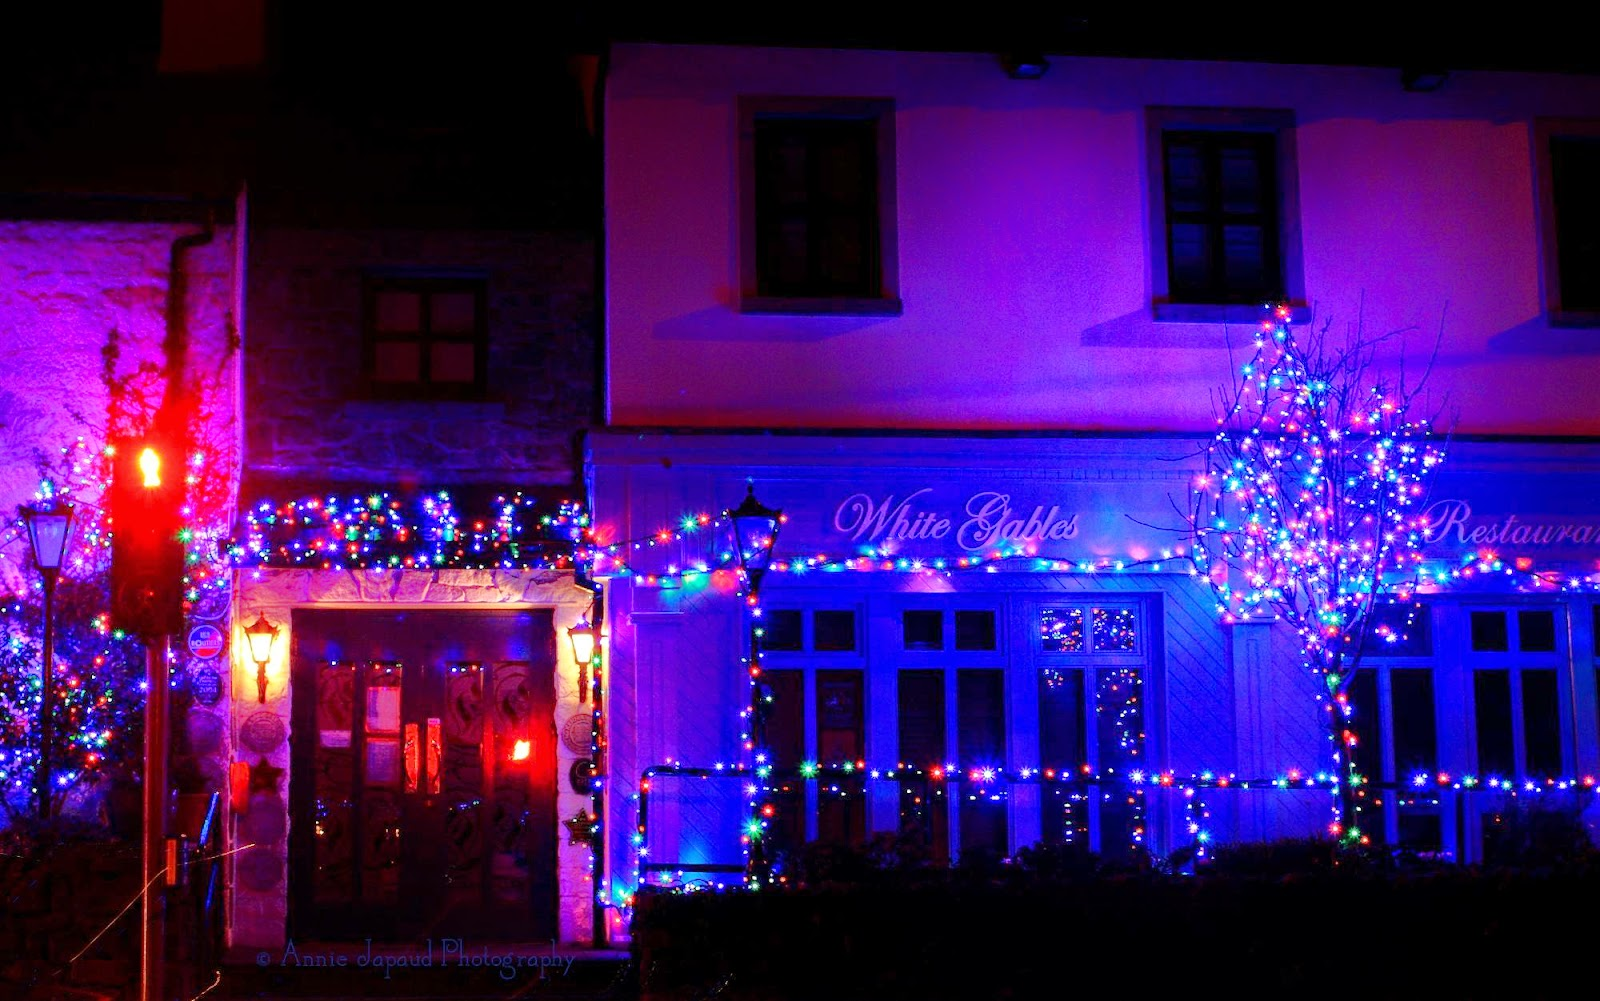 Christmas lights view of the White Gables in Moycullen